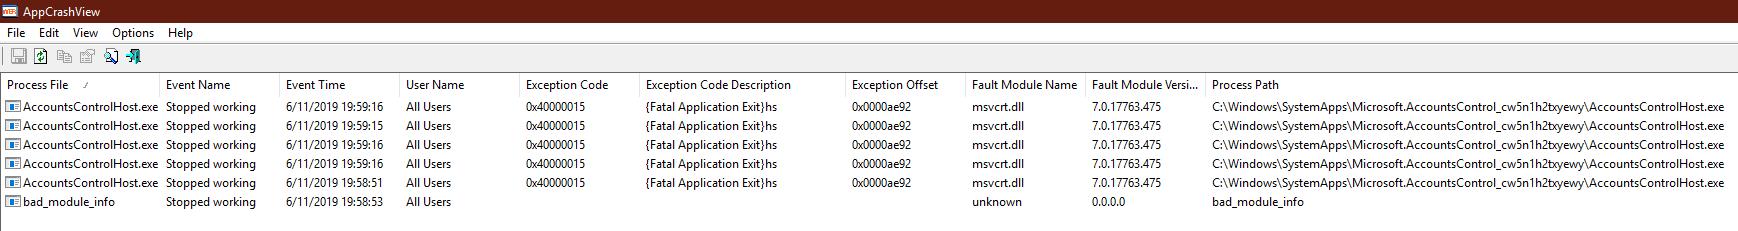 Windows Mail Cannot Remove Account, logs AccountsControlHost.exe error 0x40000015 a37b5566-b5f6-46d0-9334-5175ebf5a401?upload=true.png